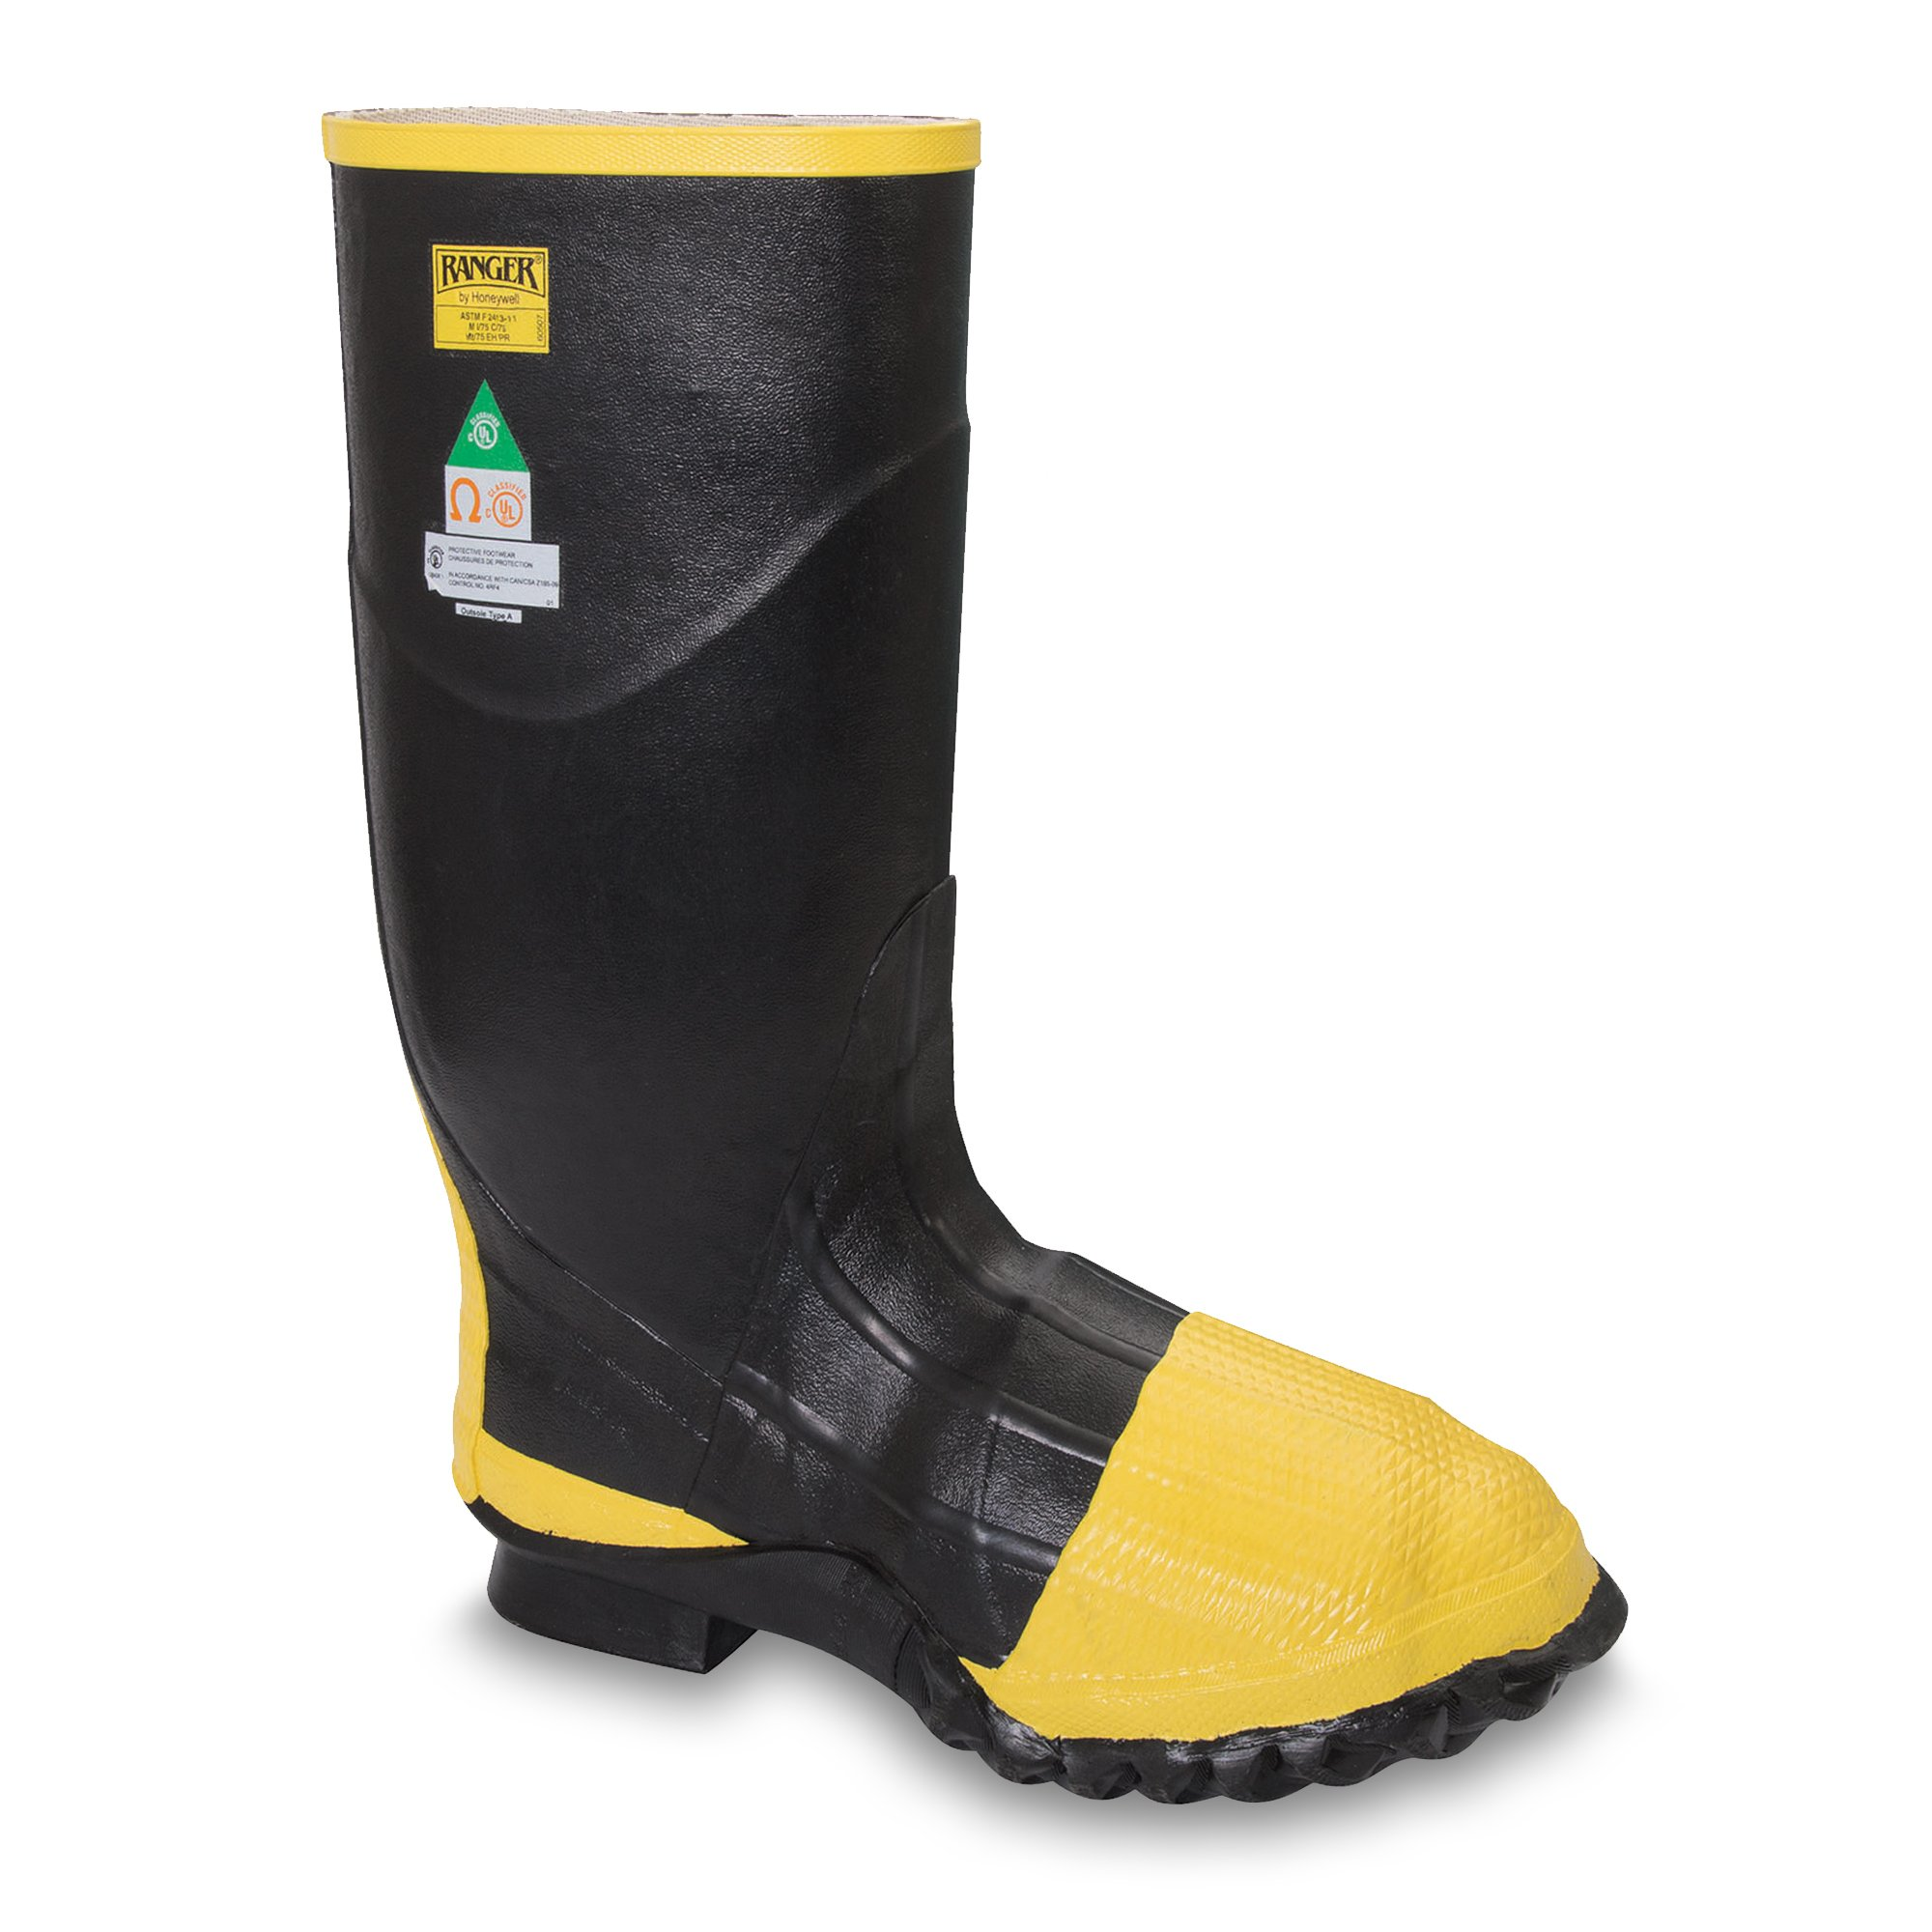 Ranger Turtleback Safety Pac 16'' Heavy-Duty Men's Rubber Metatarsal Boots with Steel Toe and Steel Midsole, Black & Yellow (R2145)